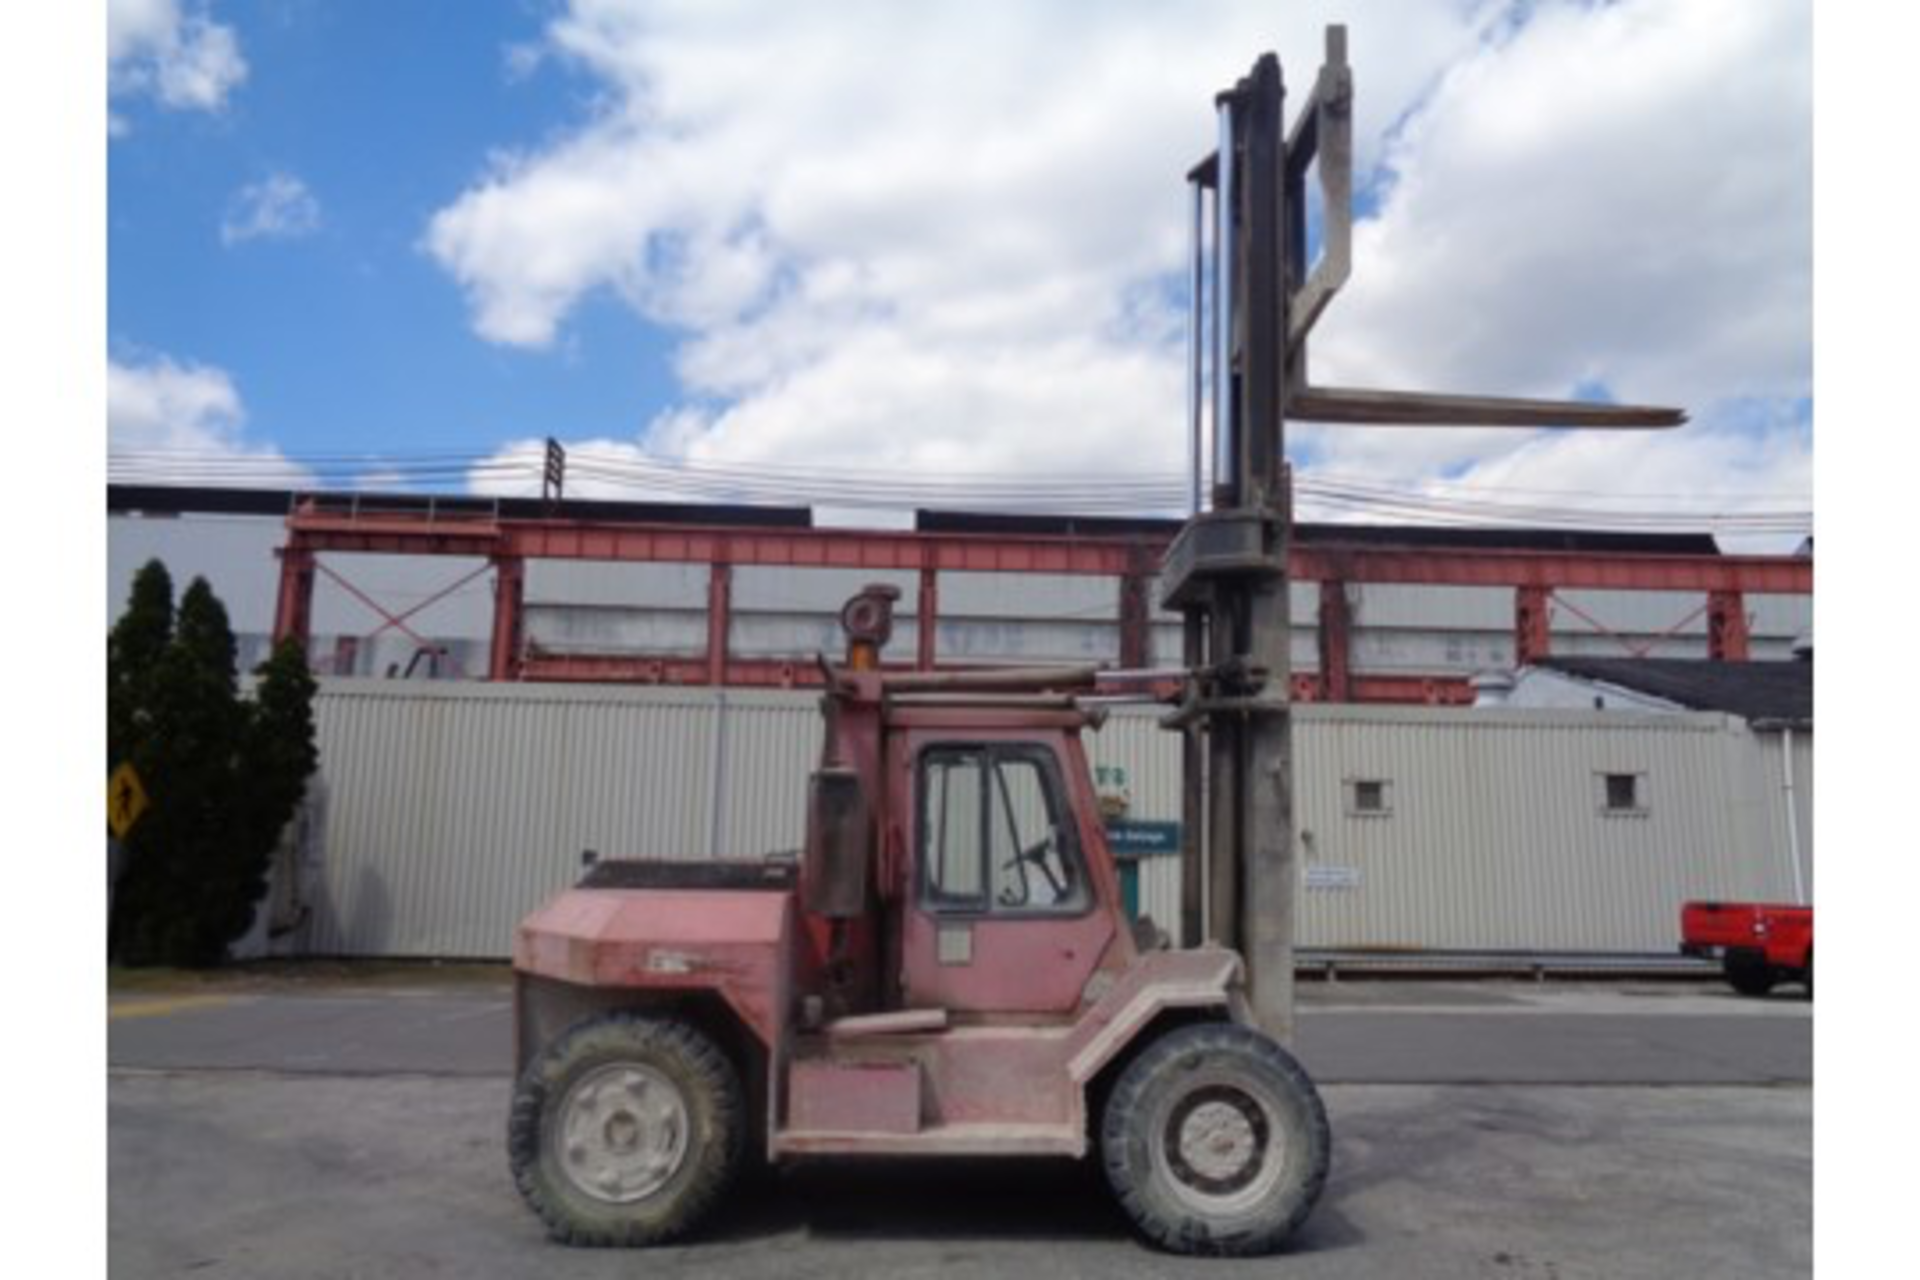 Taylor TE200S 20,000lb Forklift - Image 8 of 10